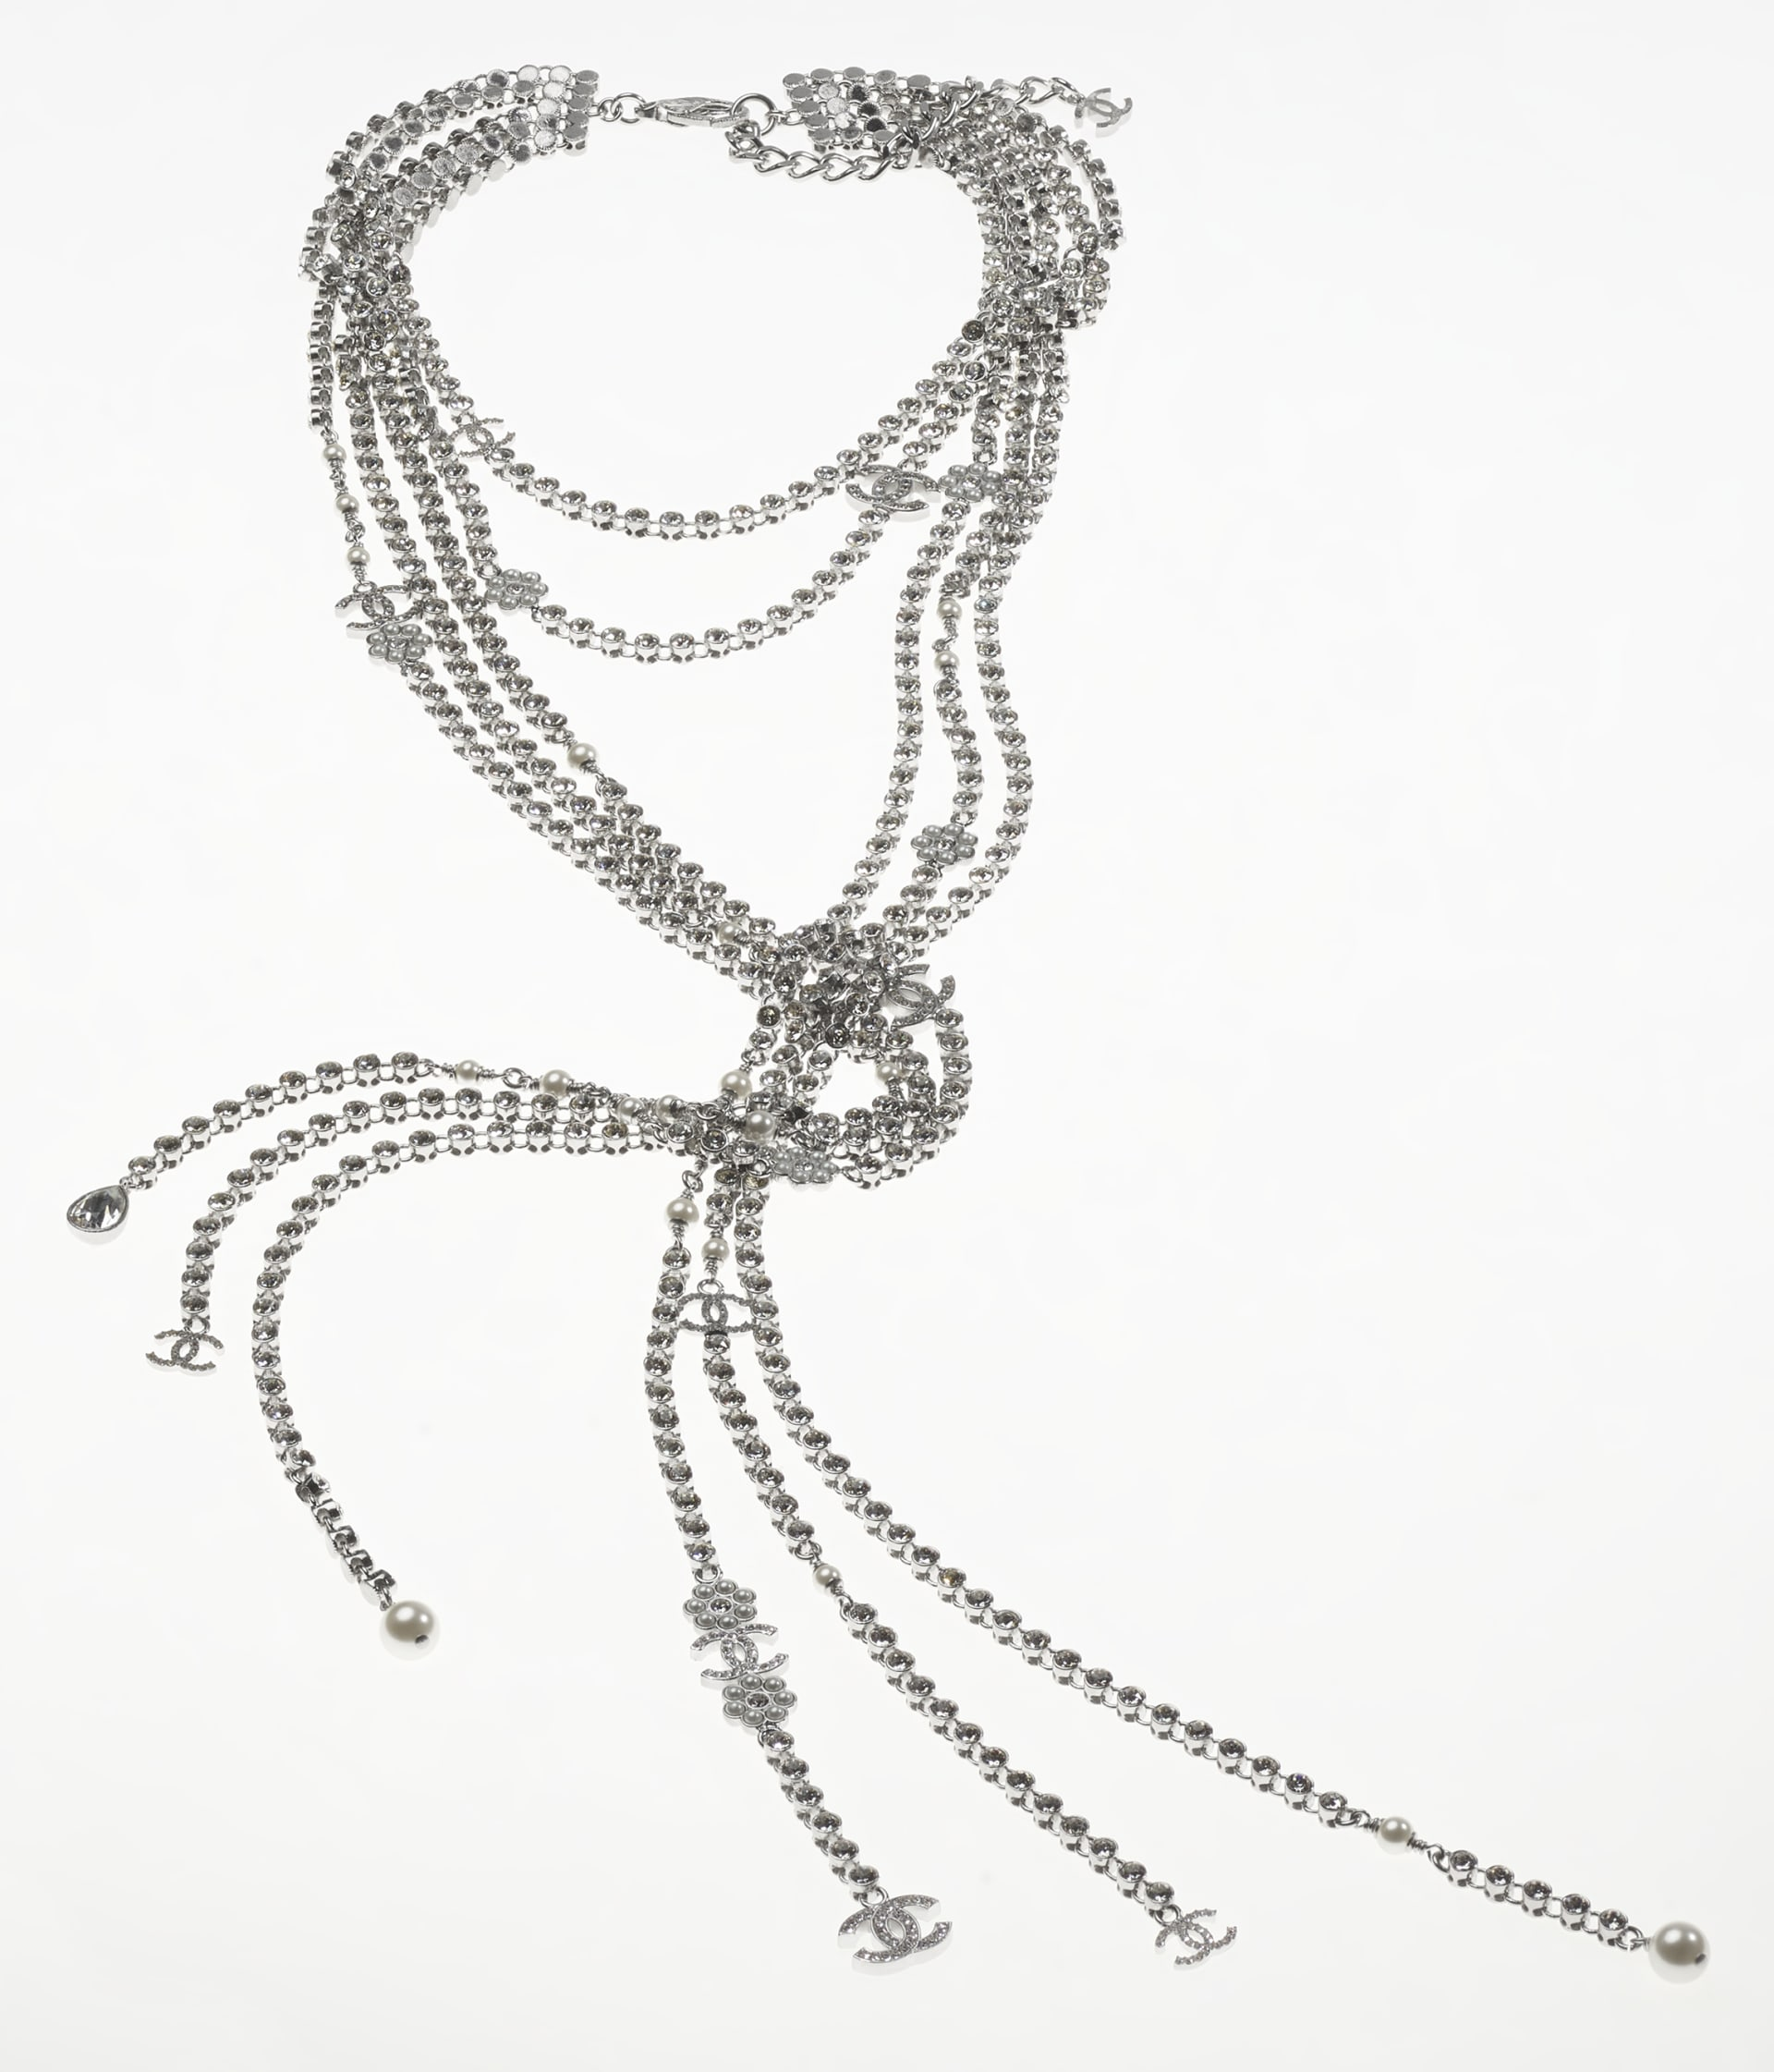 image 2 - Necklace - Metal, Strass & Glass Pearls - Silver, Crystal & Pearly White